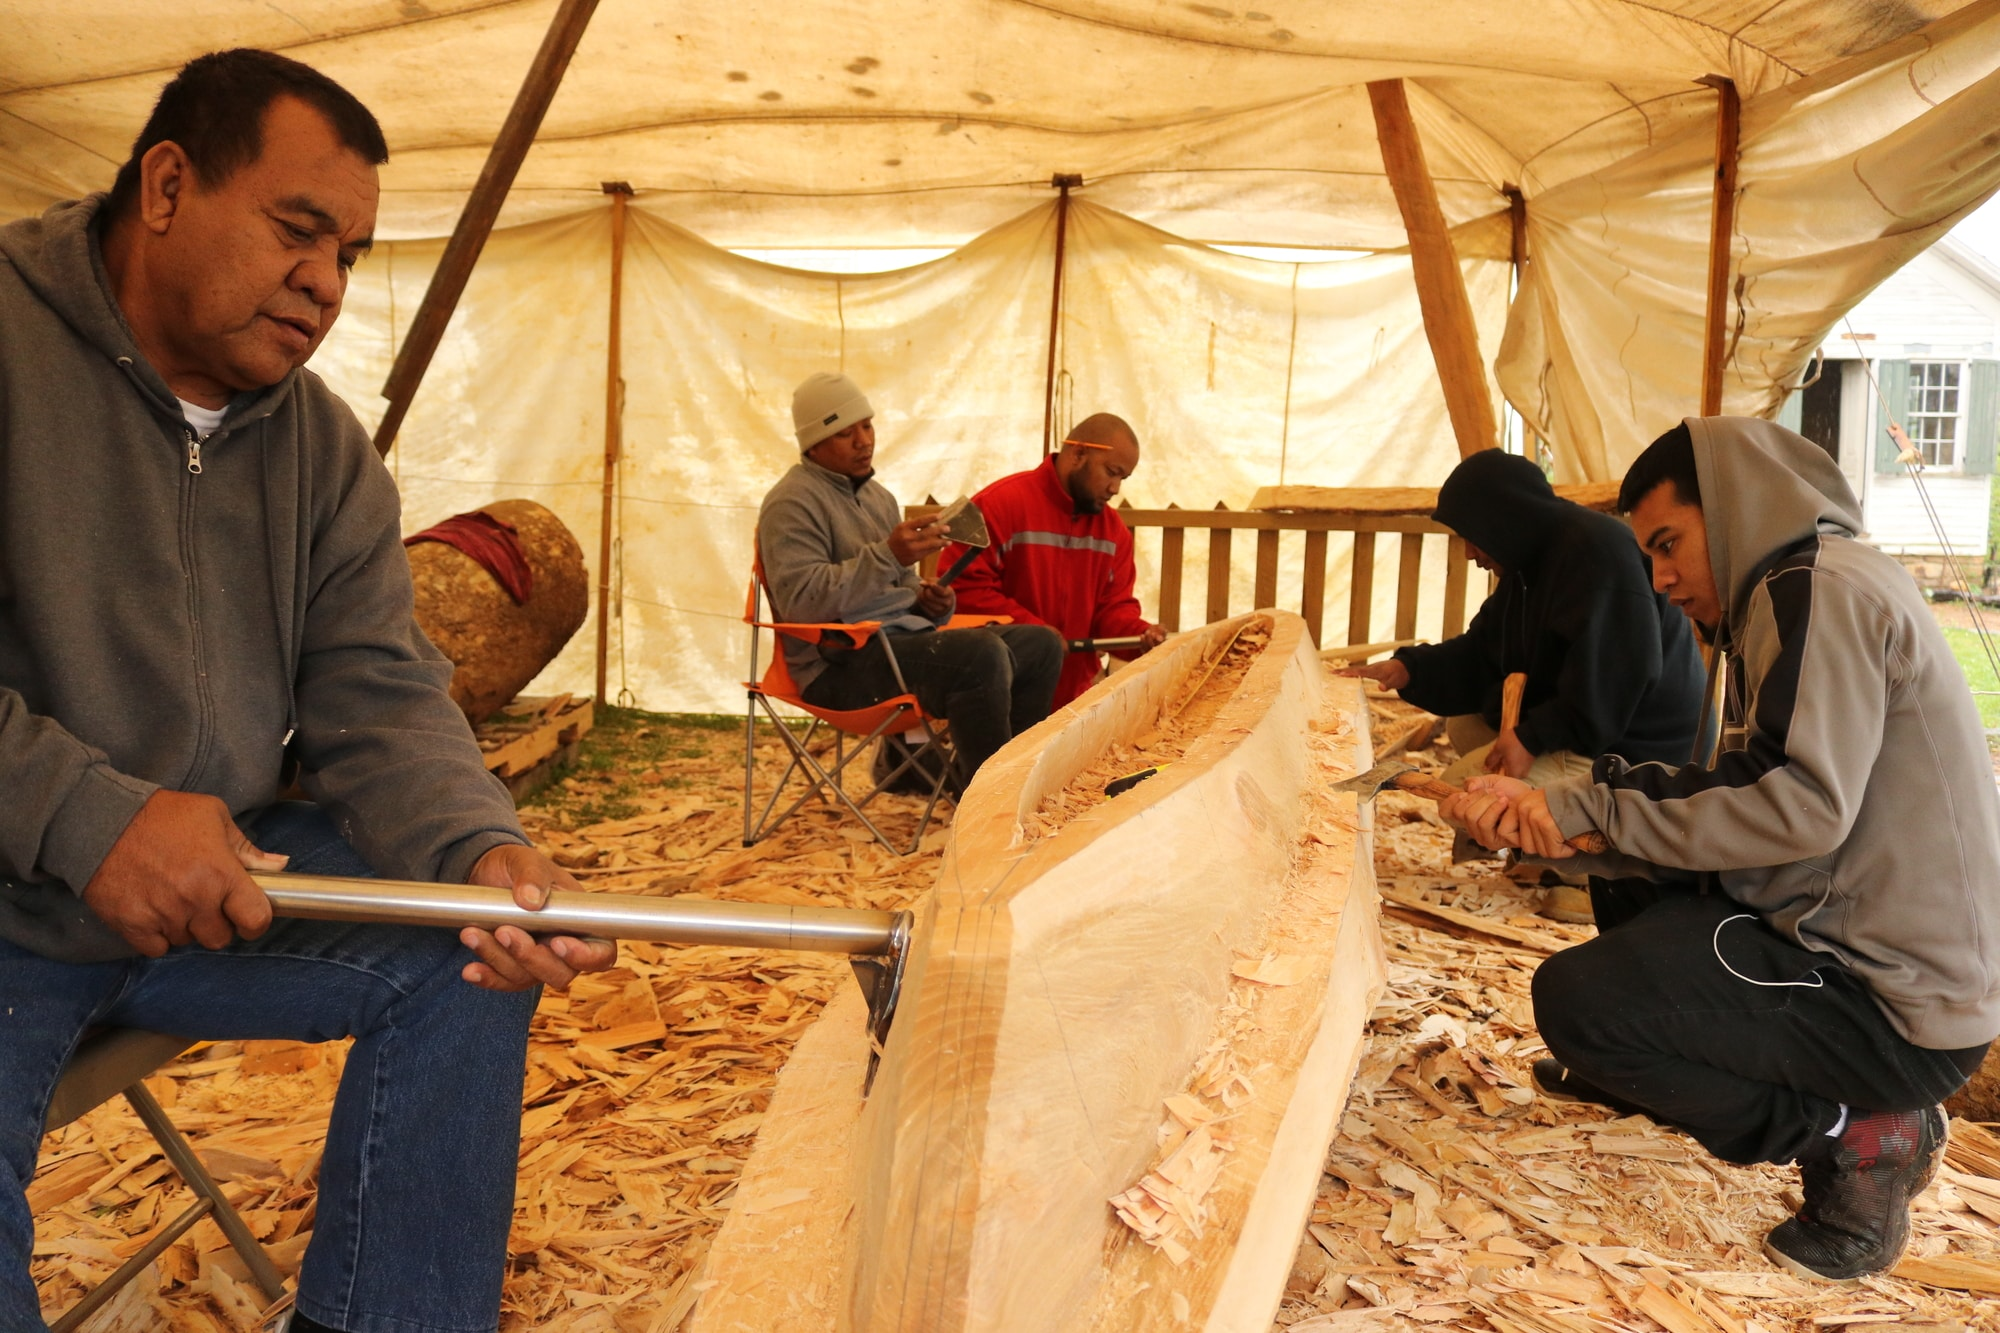 Liton and a group of four other people are seen under a tent carving the canoe, surrounded by a pile of wood shavings.